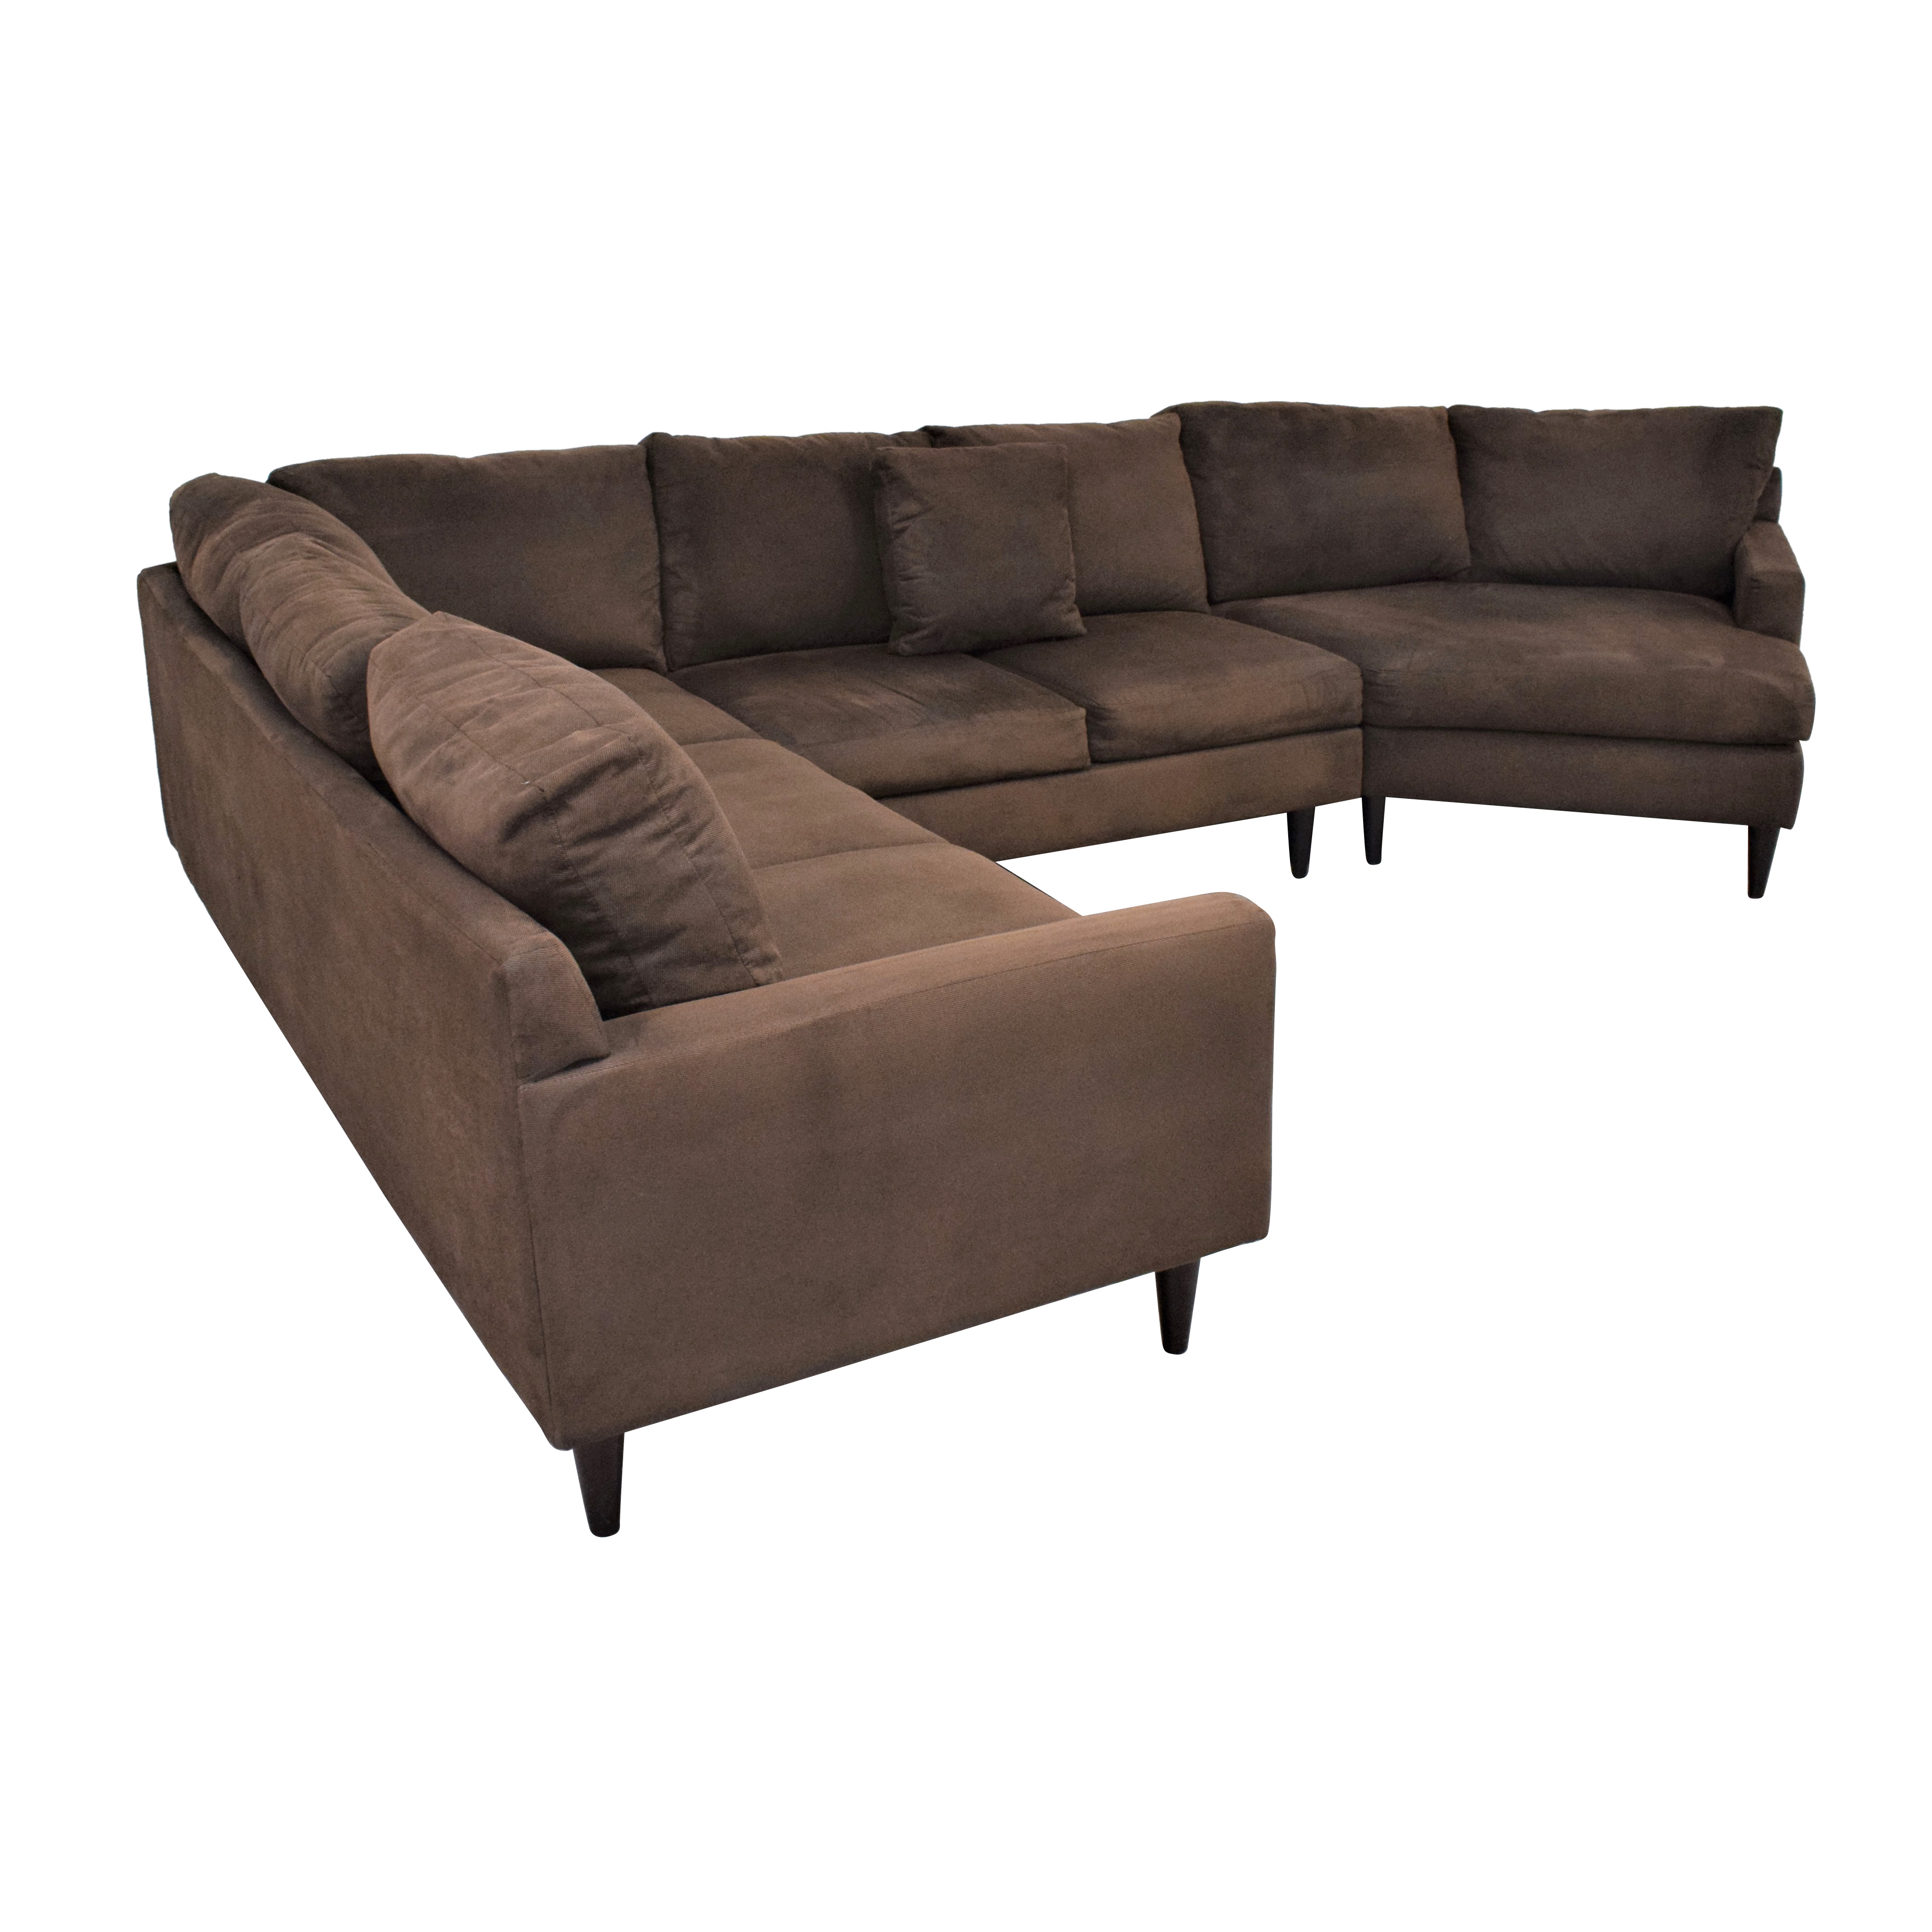 Max Home Cuddler Sectional Sofa Max Home